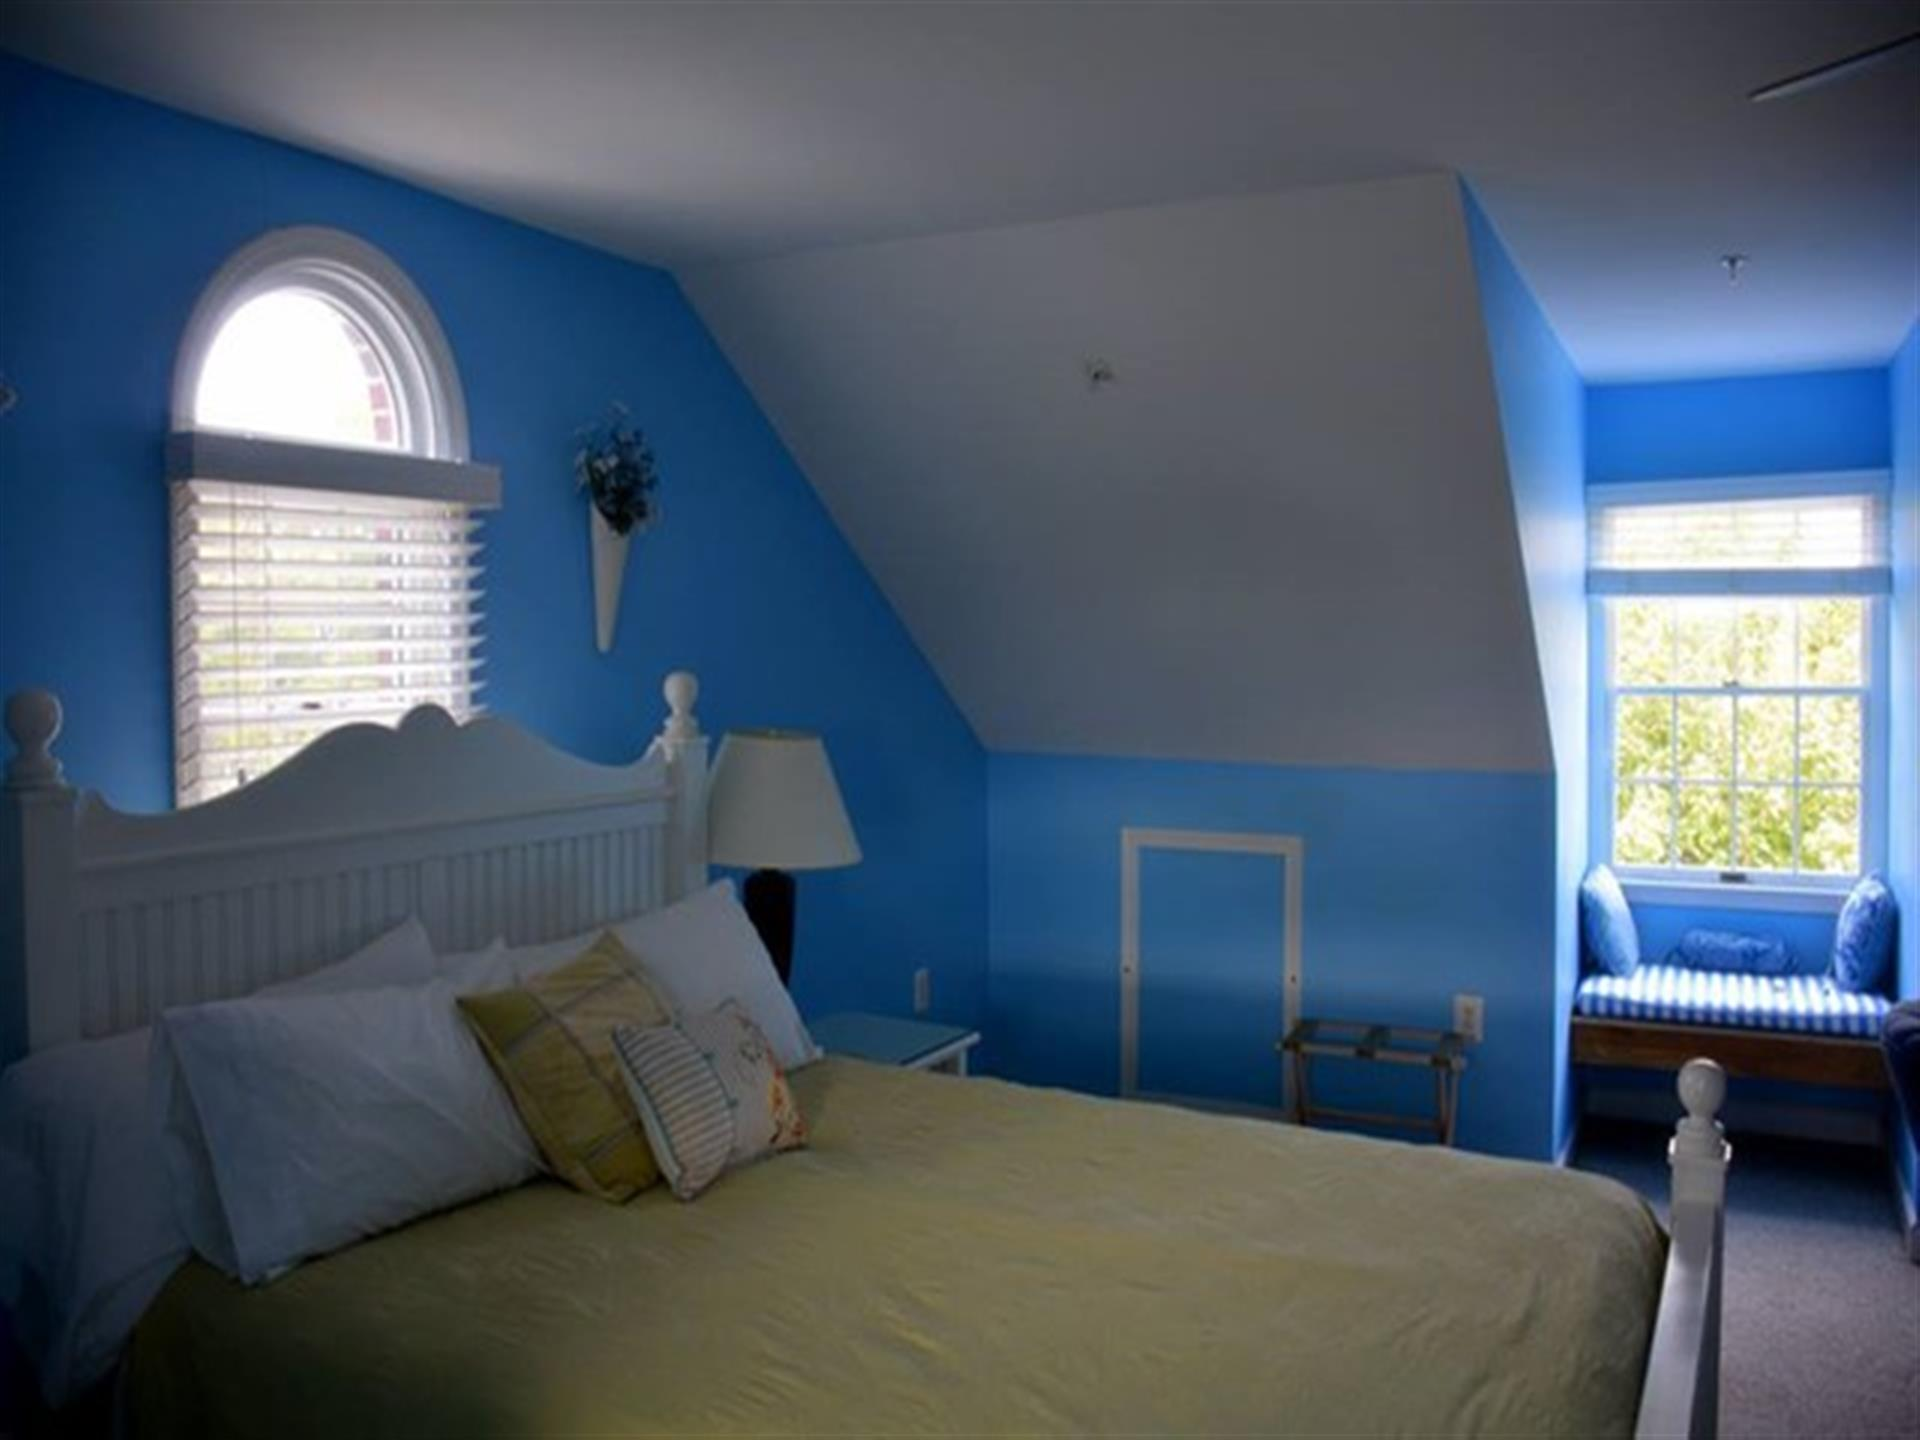 Suite 4 bedroom. Sky blue walls, white furniture and a queen-size bed.